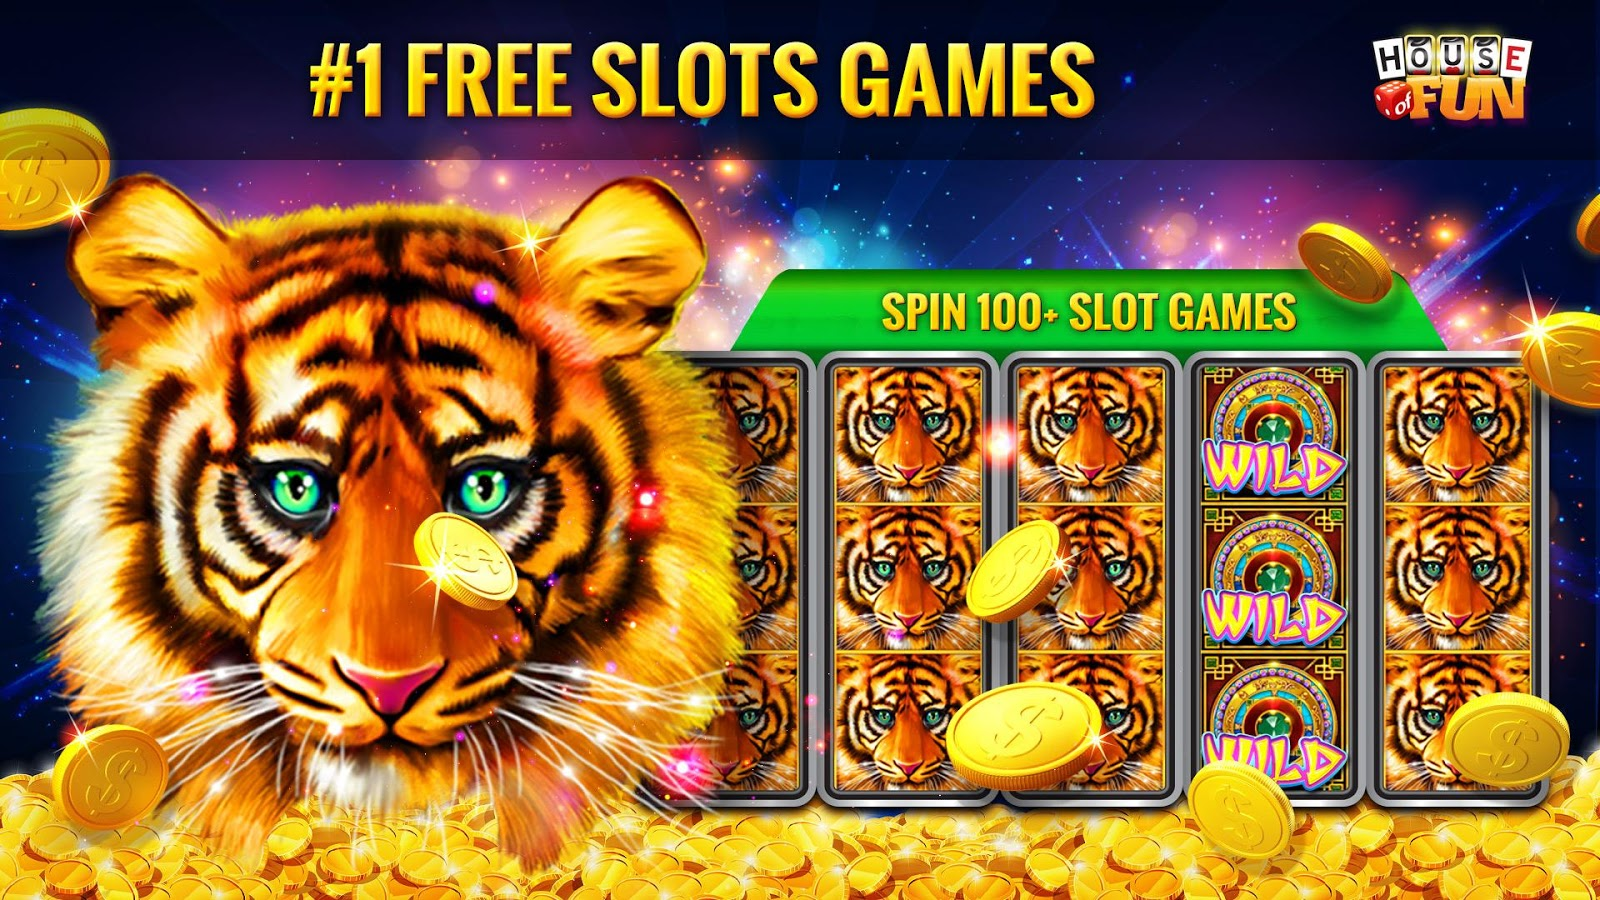 Stay Tuned and Play New Slots